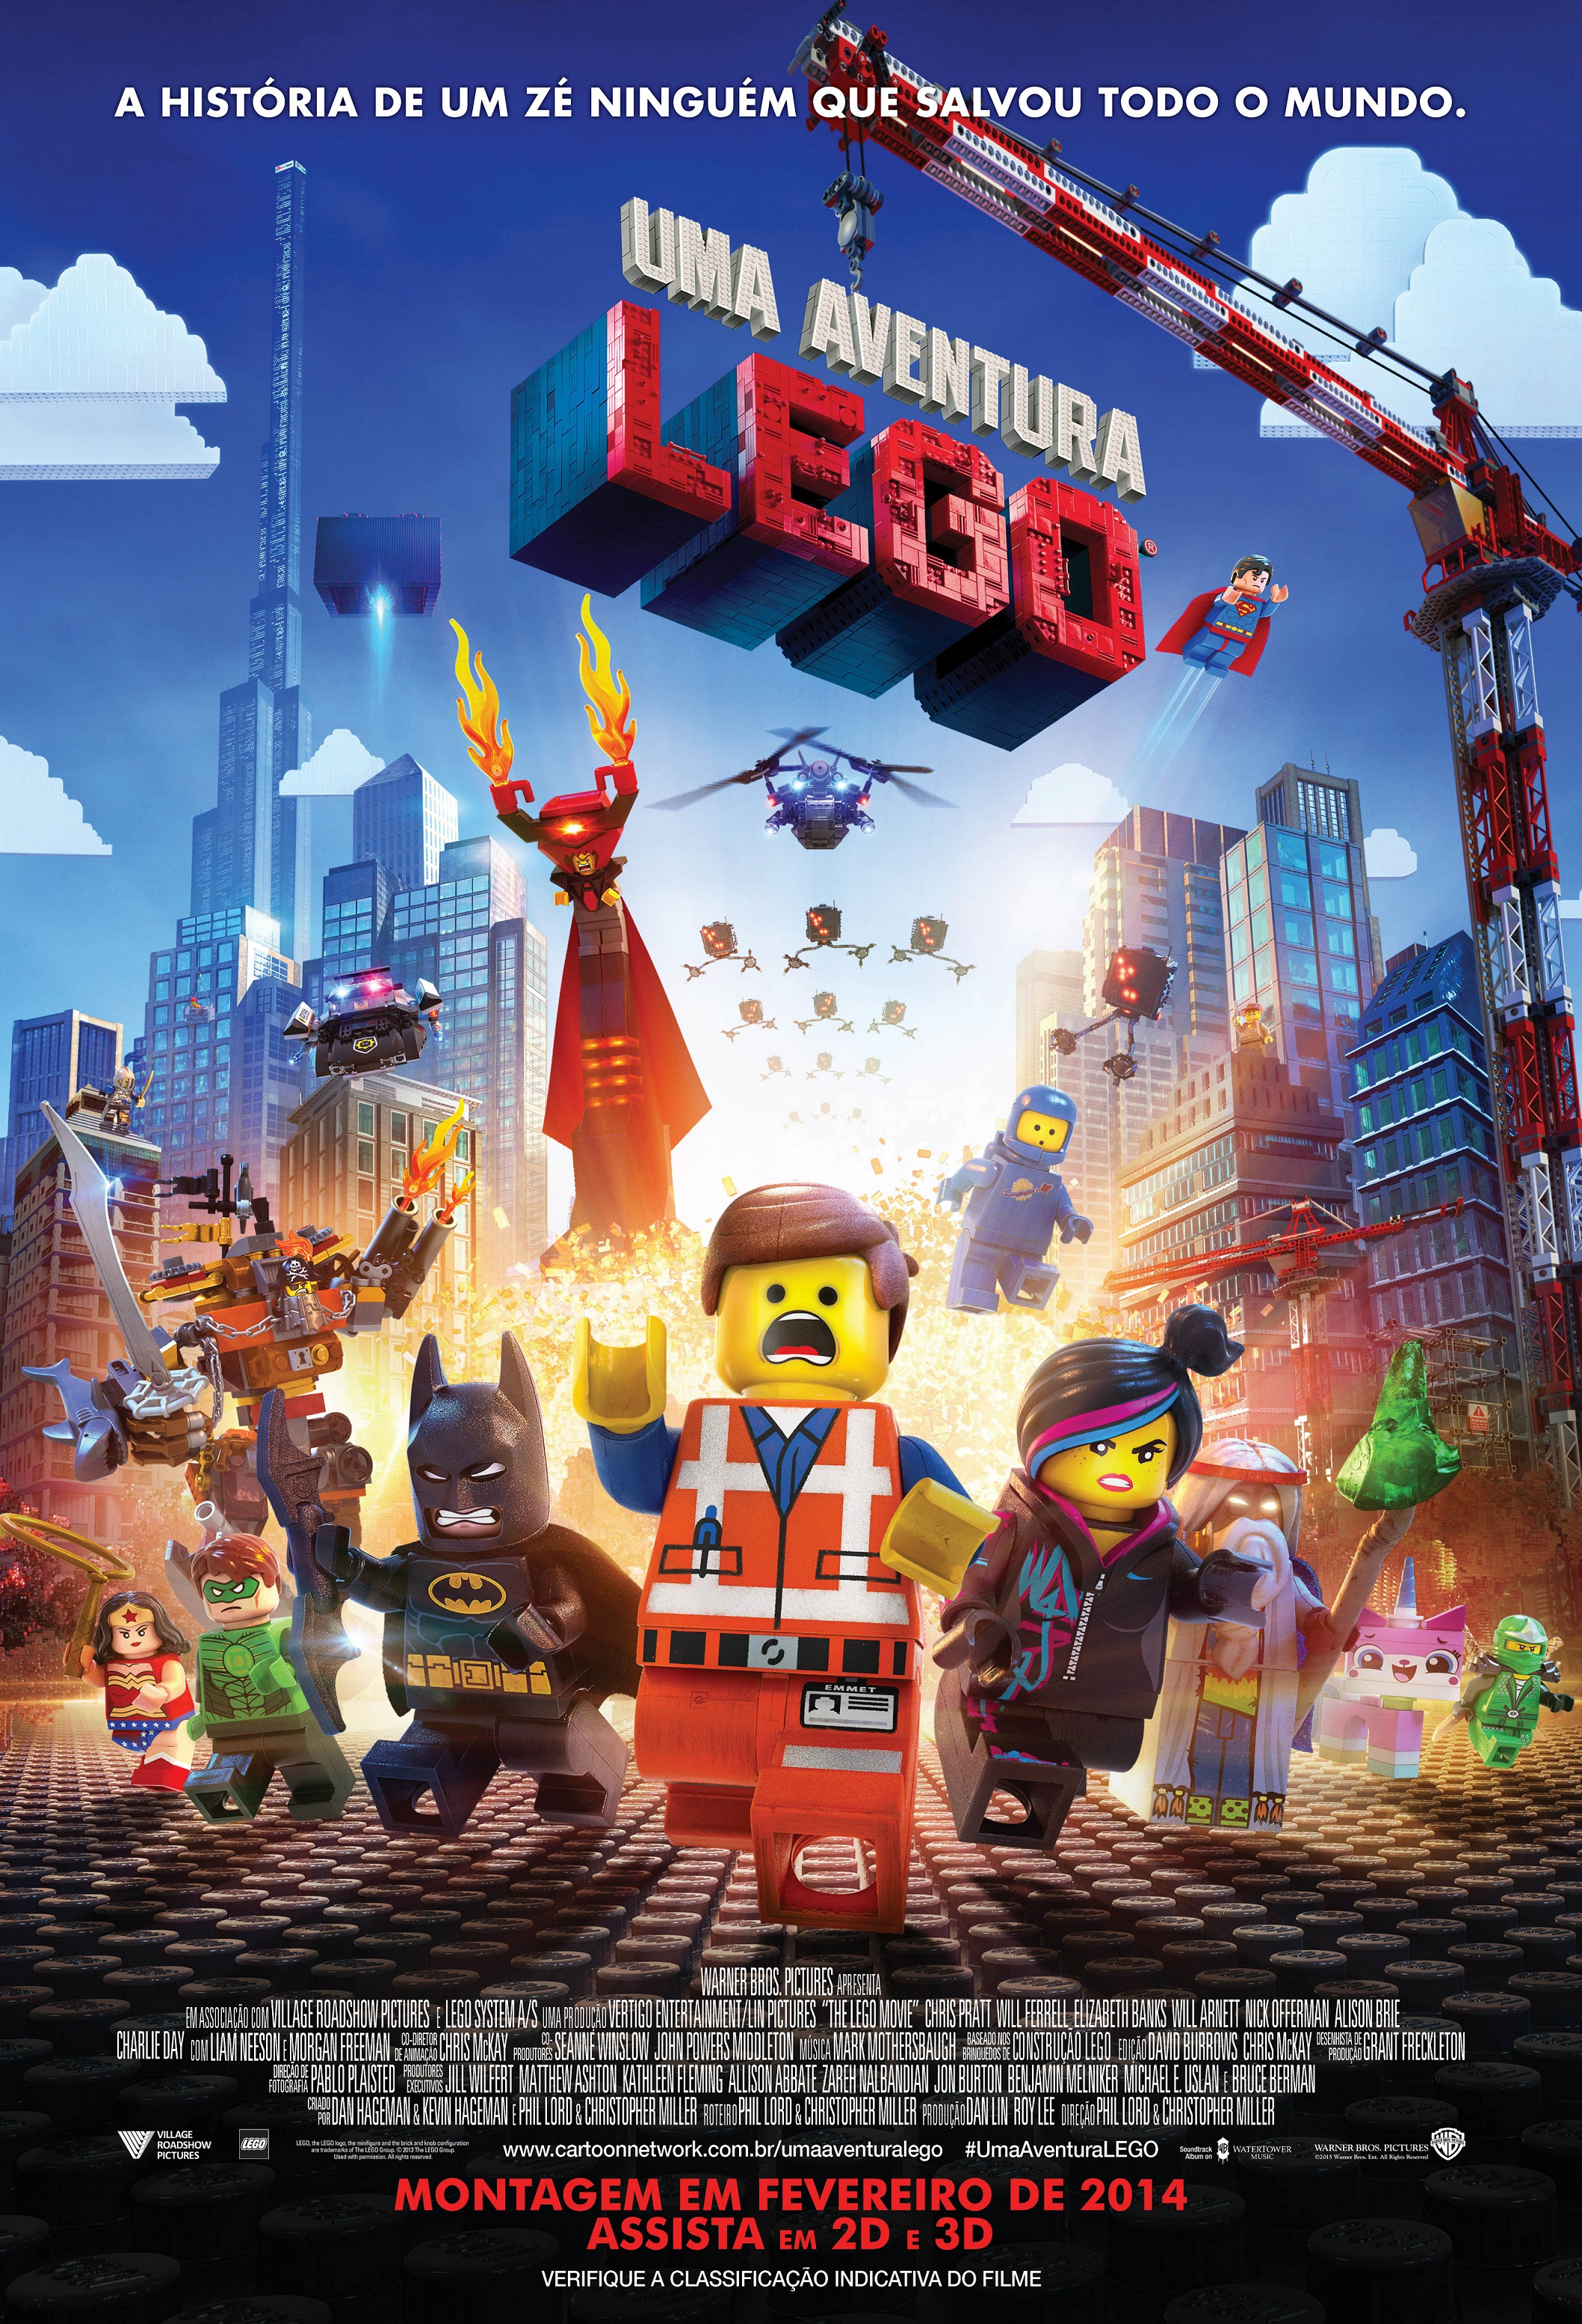 The Lego Movie-Official Poster Banner PROMO POSTER XXLG BRASIL-04NOVEMBRO2013